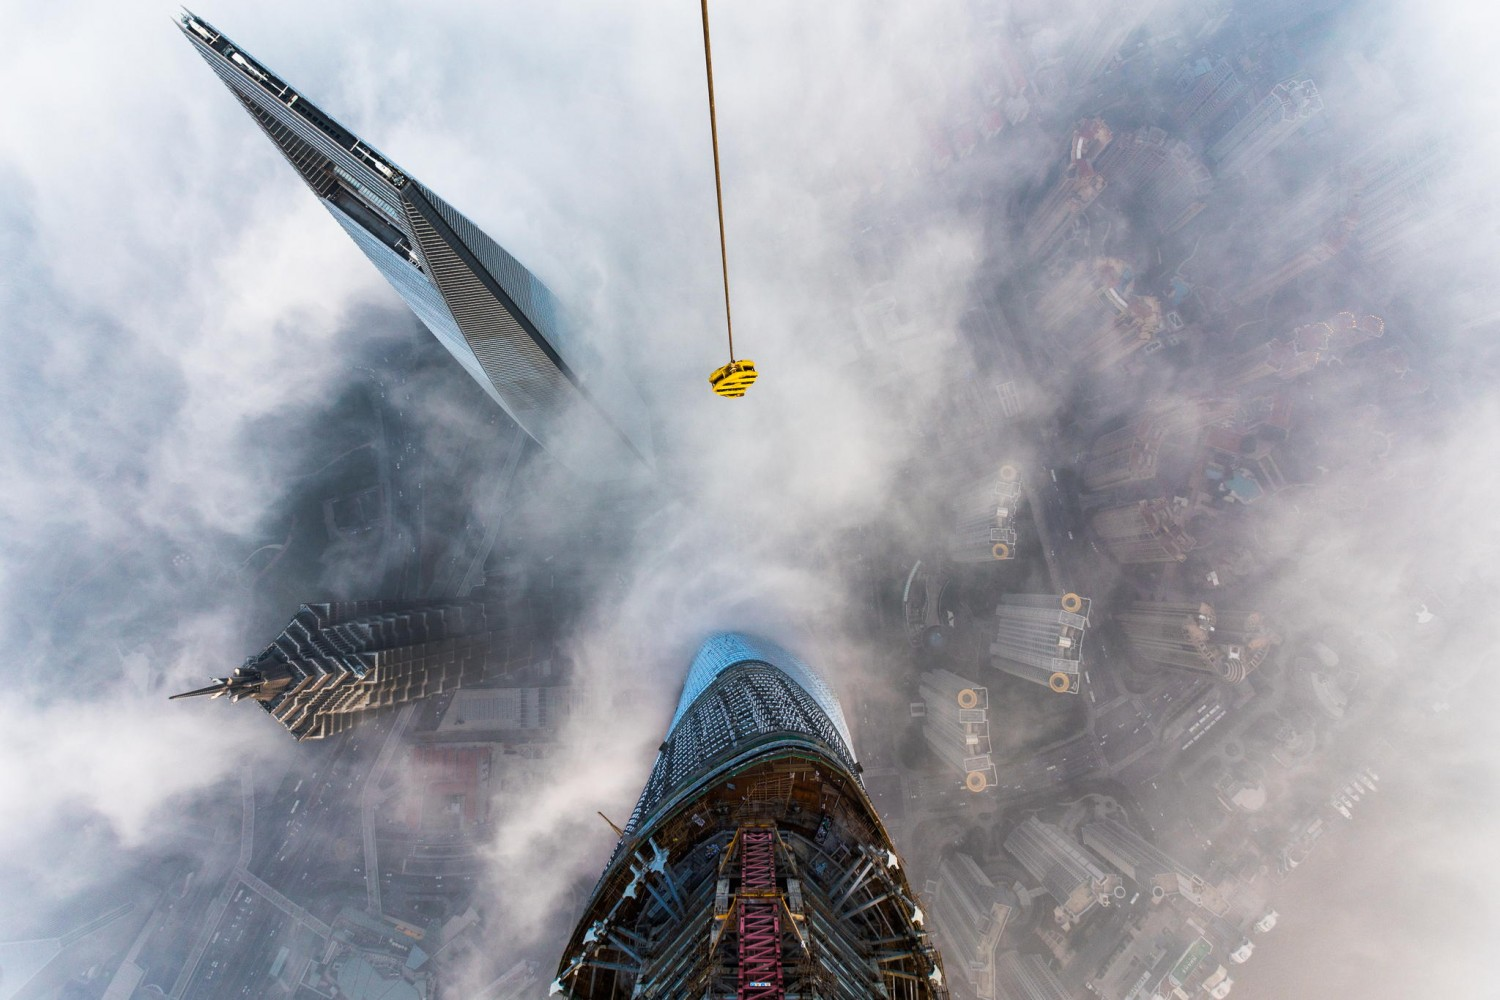 The Story Behind that Insane Shanghai Tower Climb